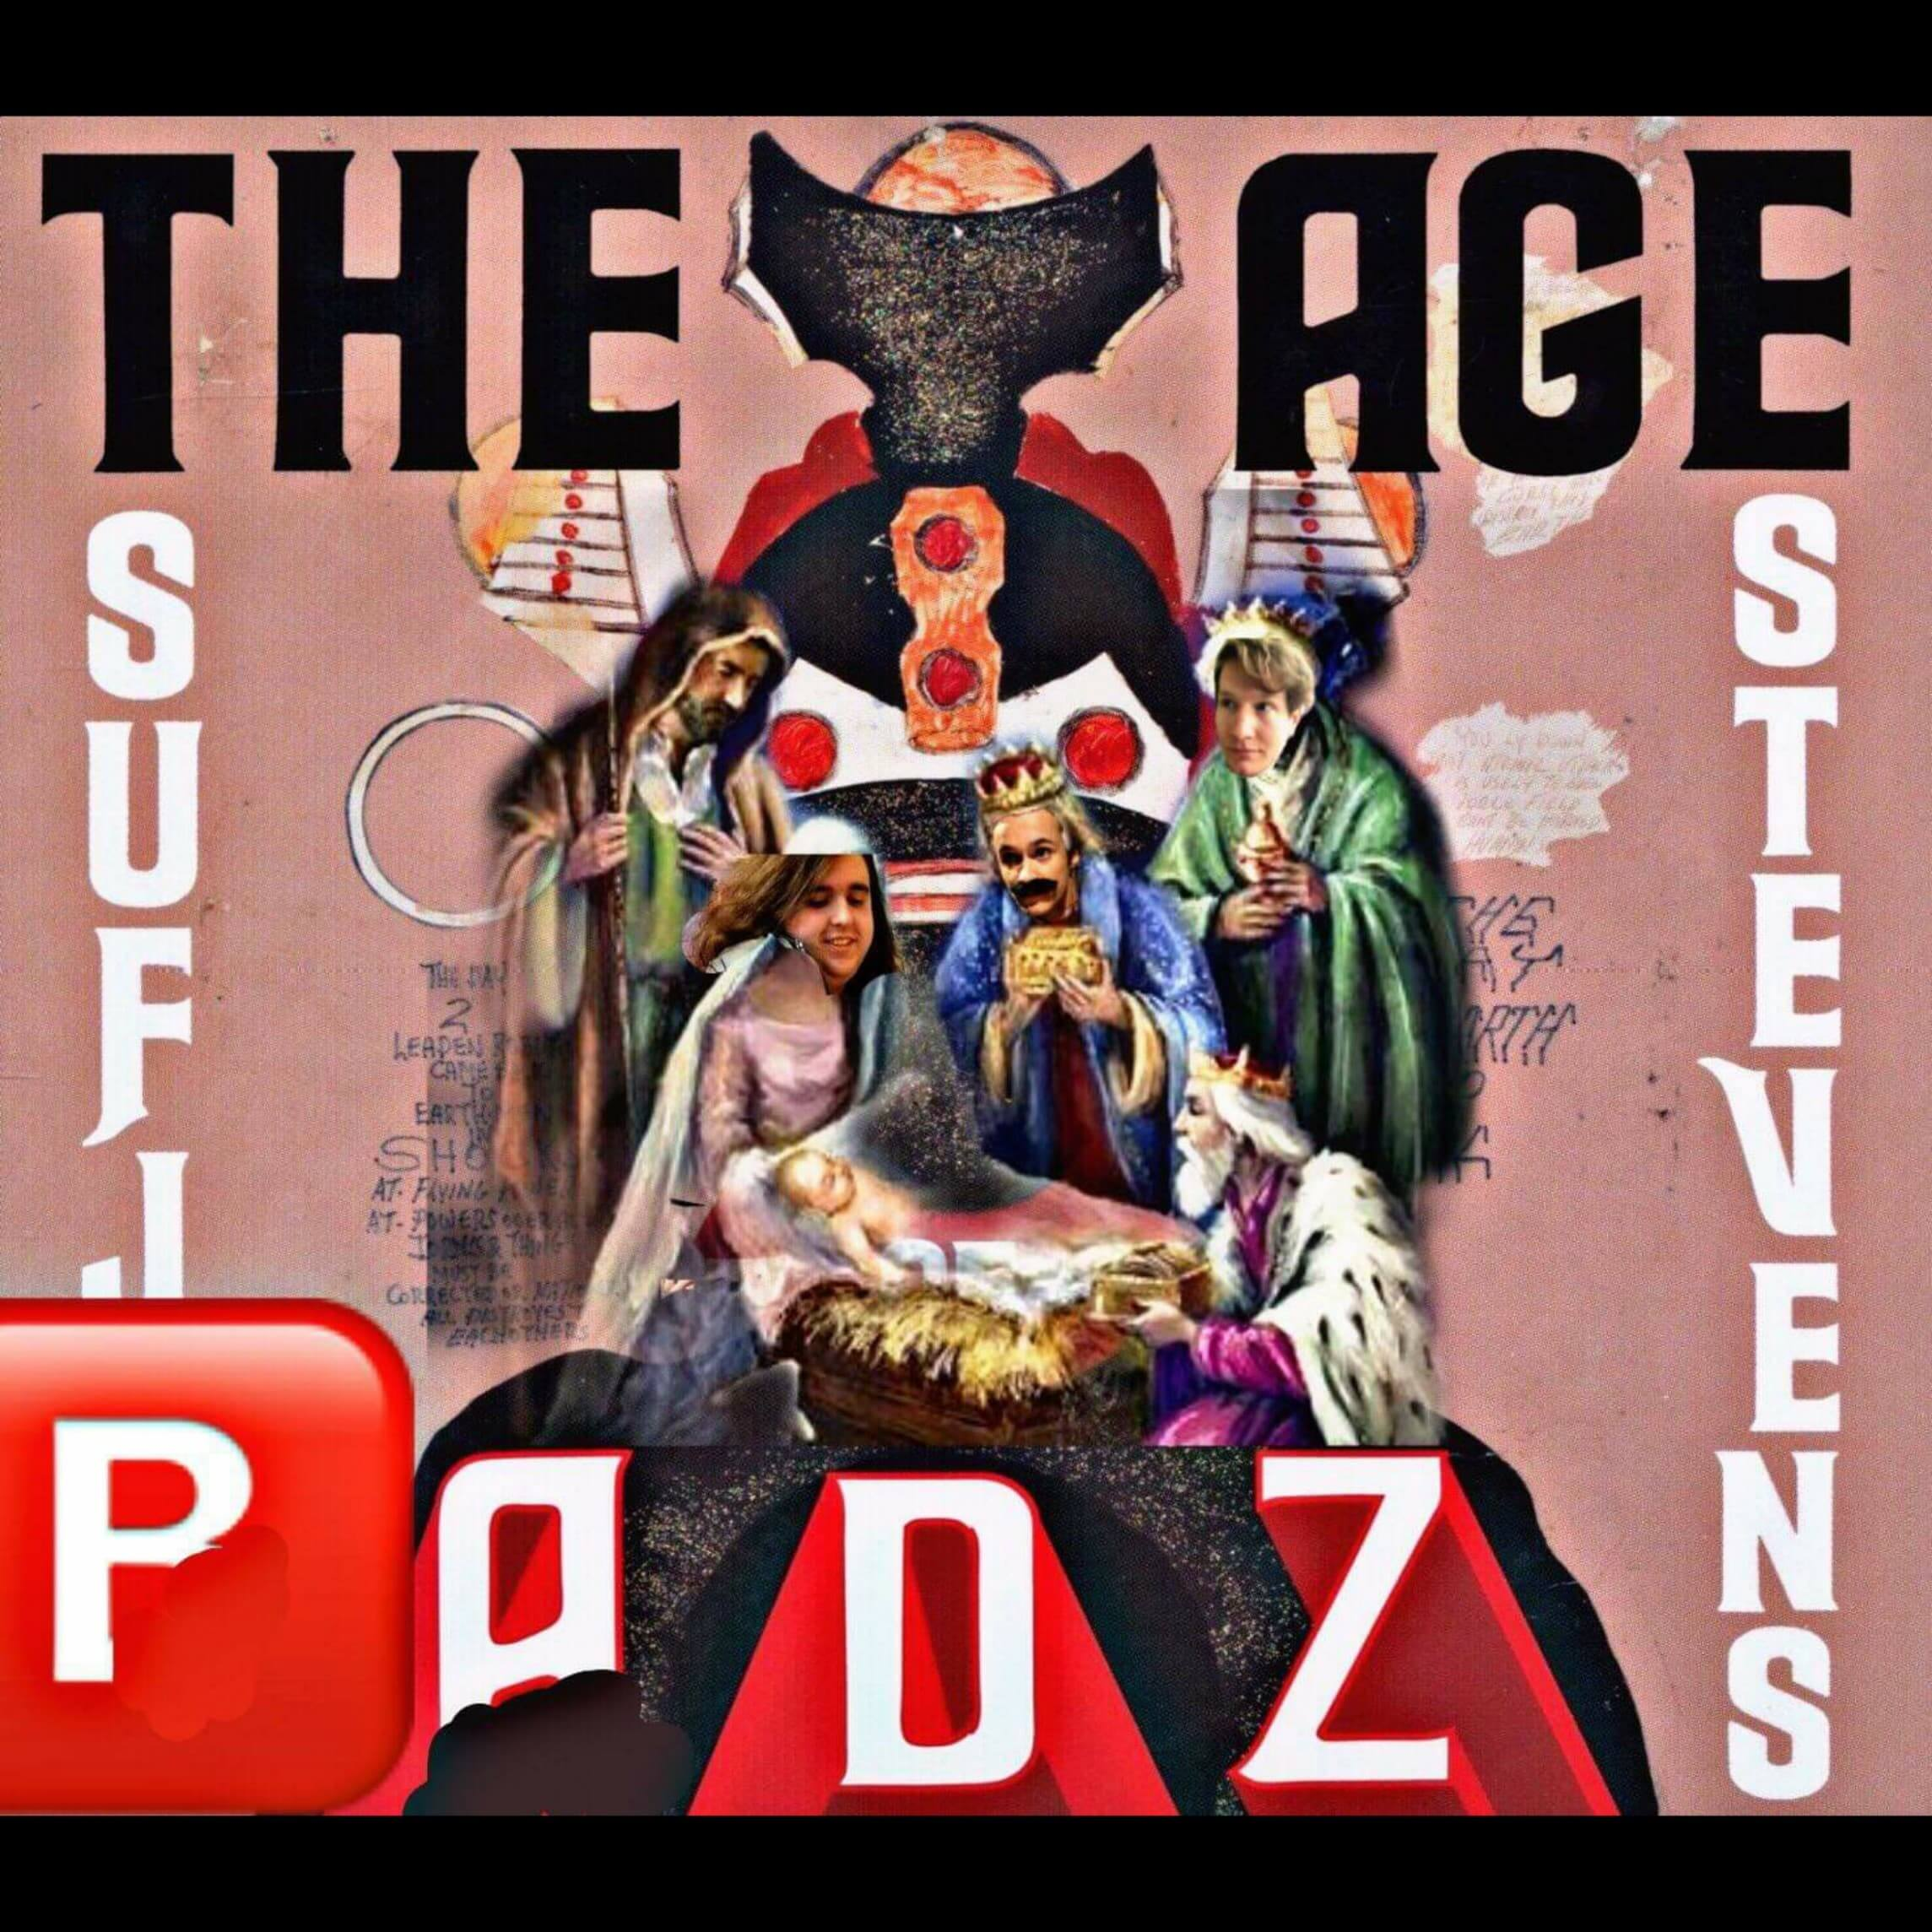 The Age Of Podz